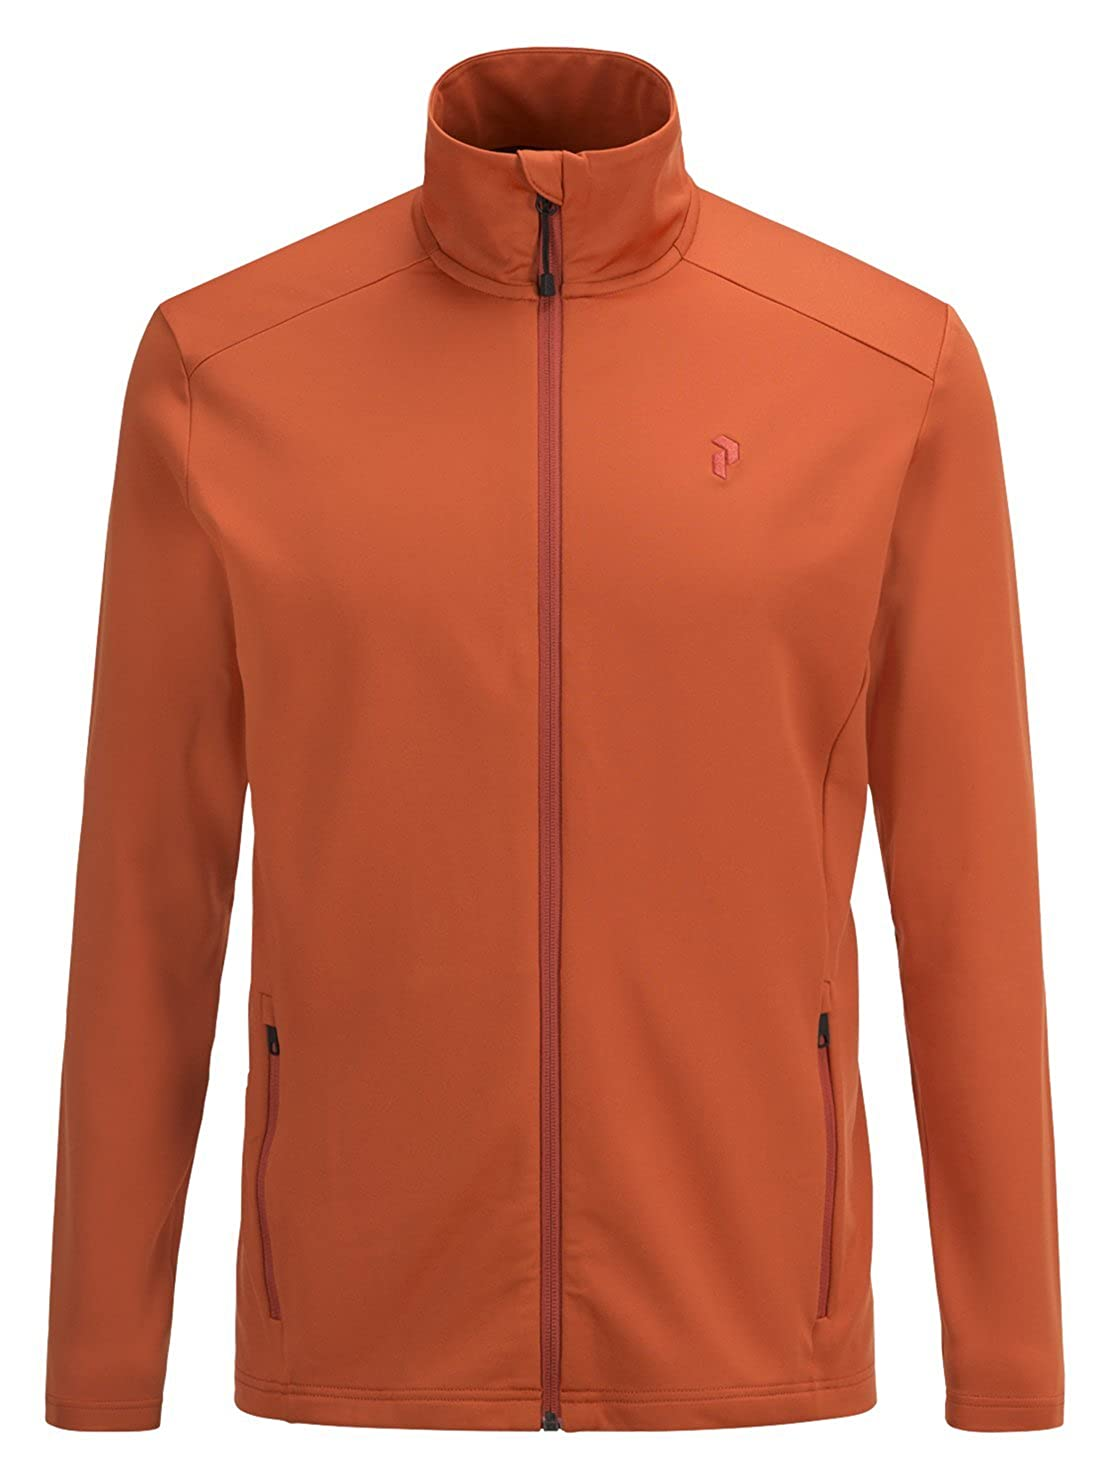 Peak Performance Ace Zip Blaze Orange